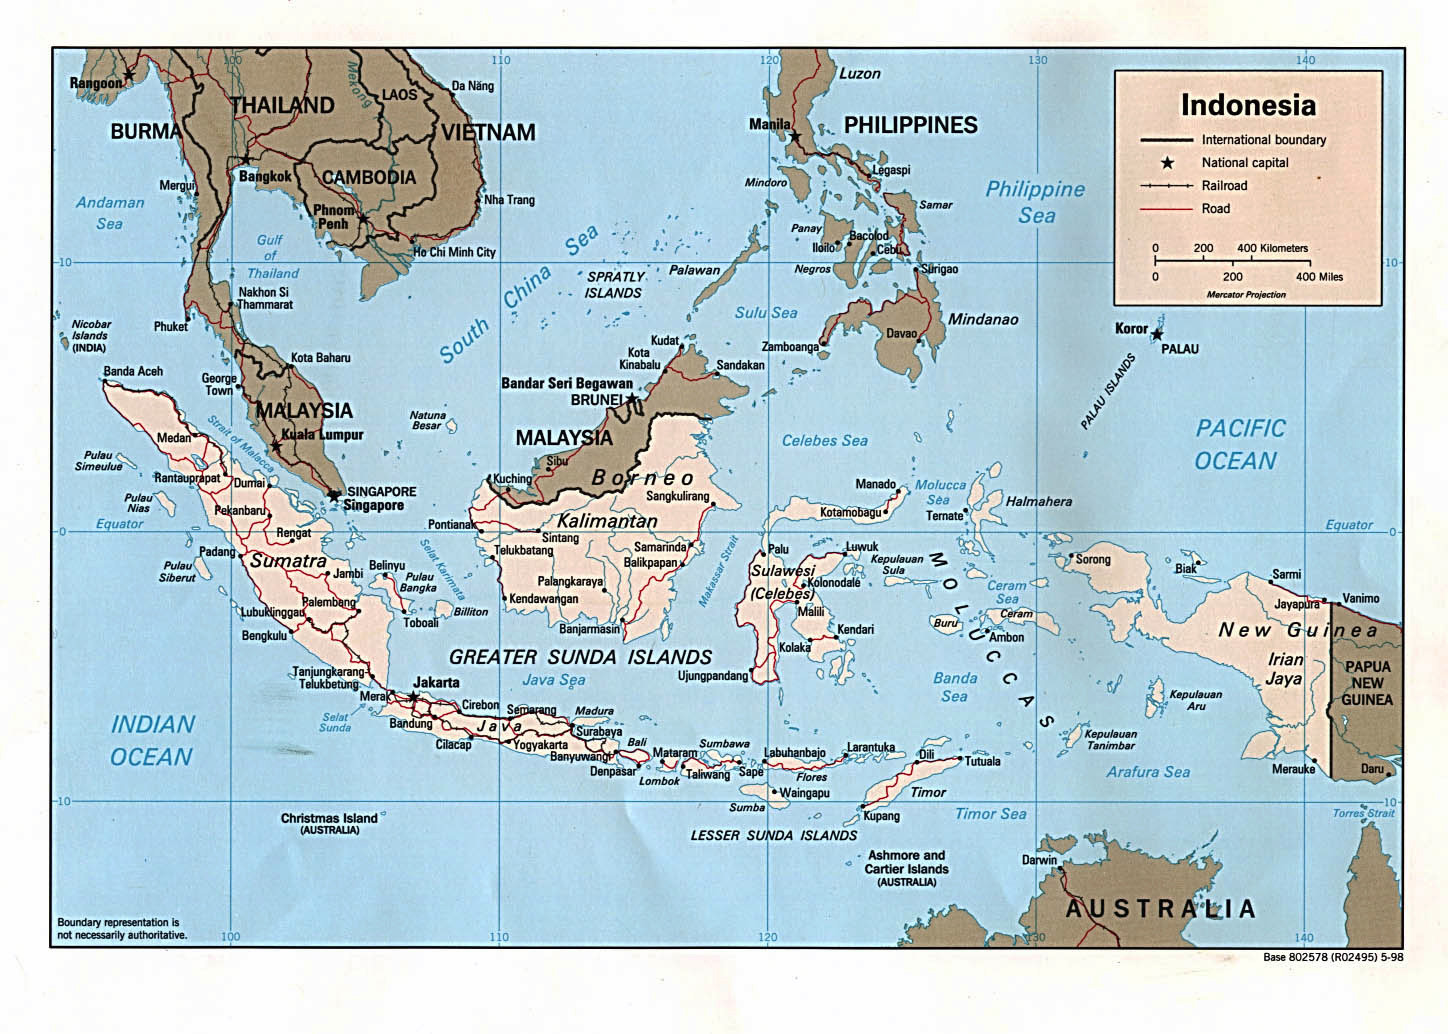 Detailed political map of Indonesia Indonesia detailed political map Vidia